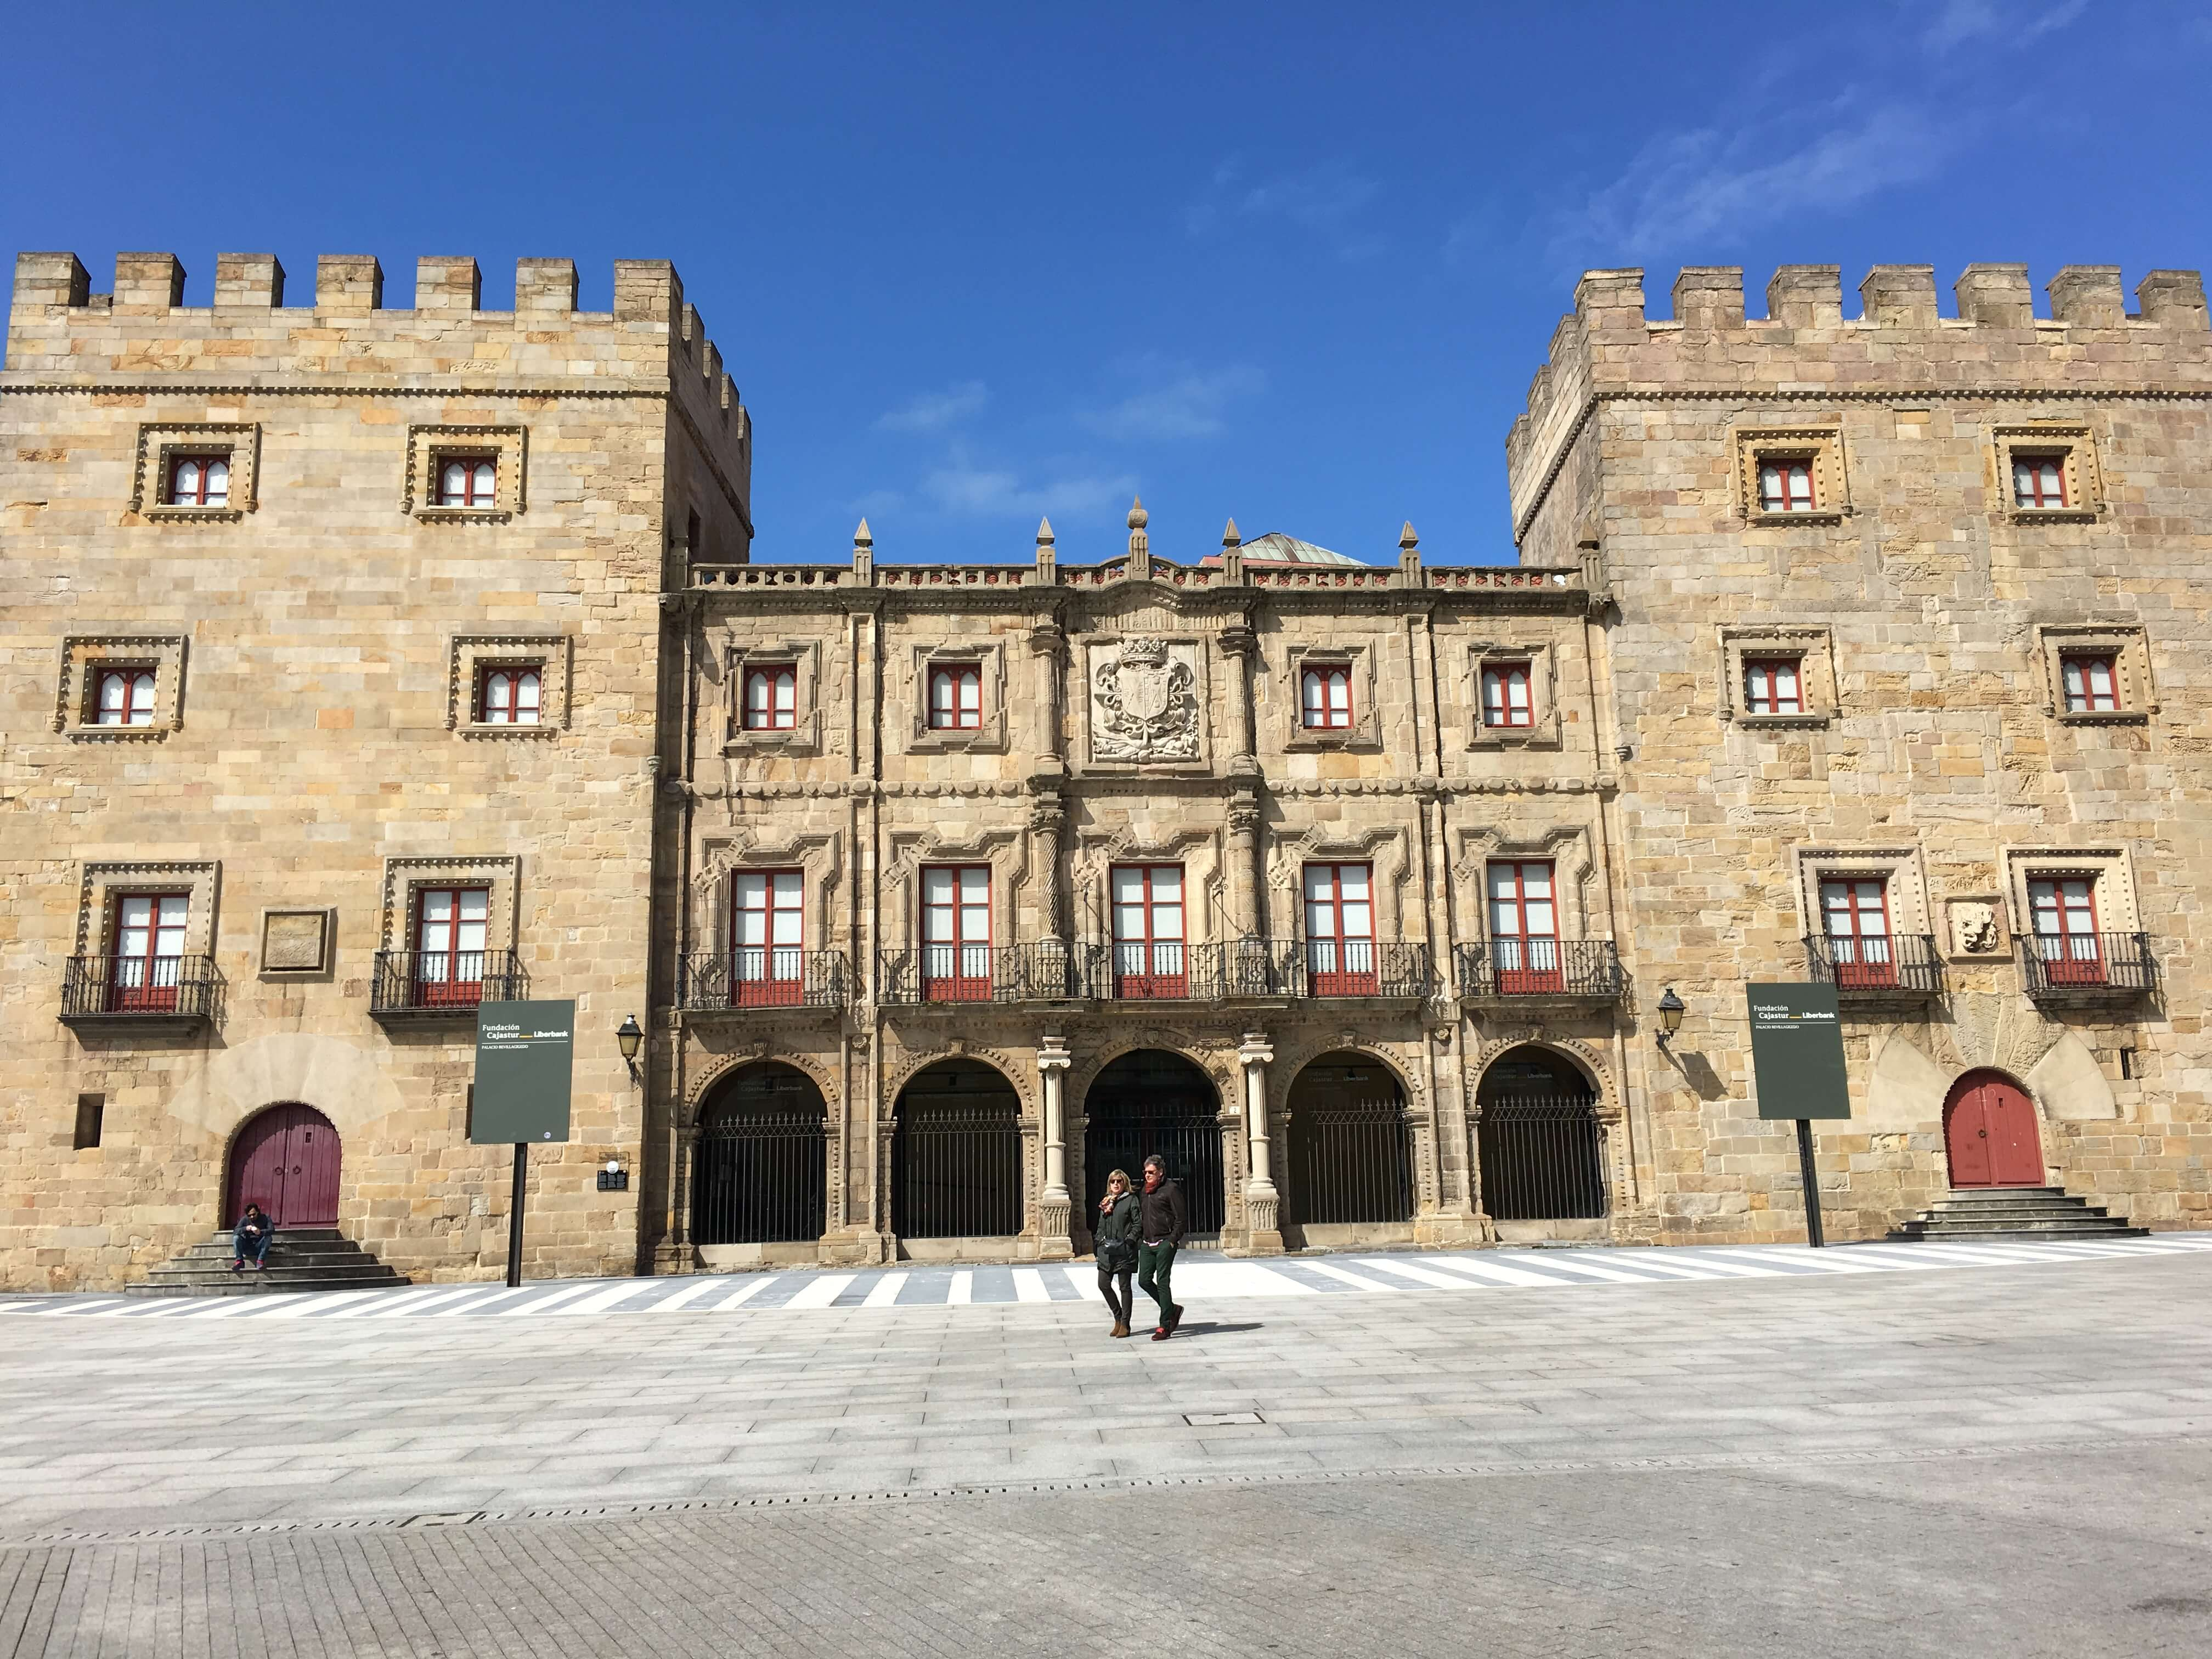 University of Asturias. One of the best places to see in Asturias